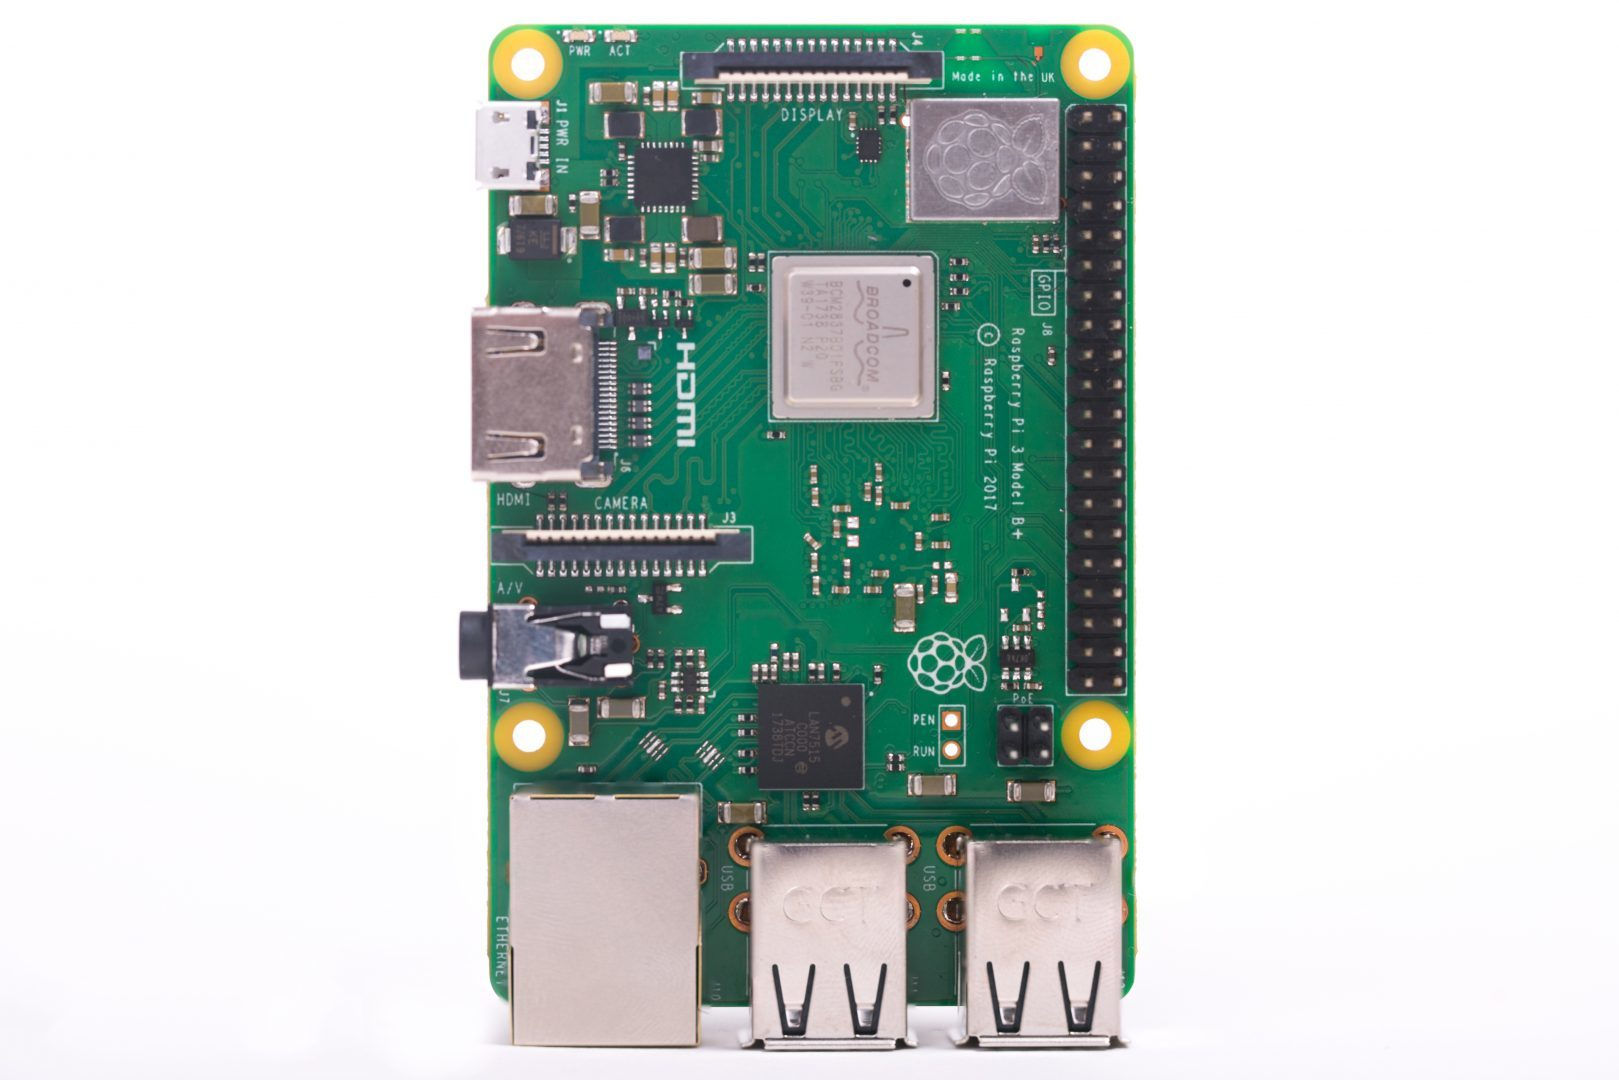 Микрокомпьютер Raspberry PI 3 Model B+ /1GB / BCM2837B0 1.4GHz ARM/ WiFi 2.4GHz/ Bluetooth 4.2